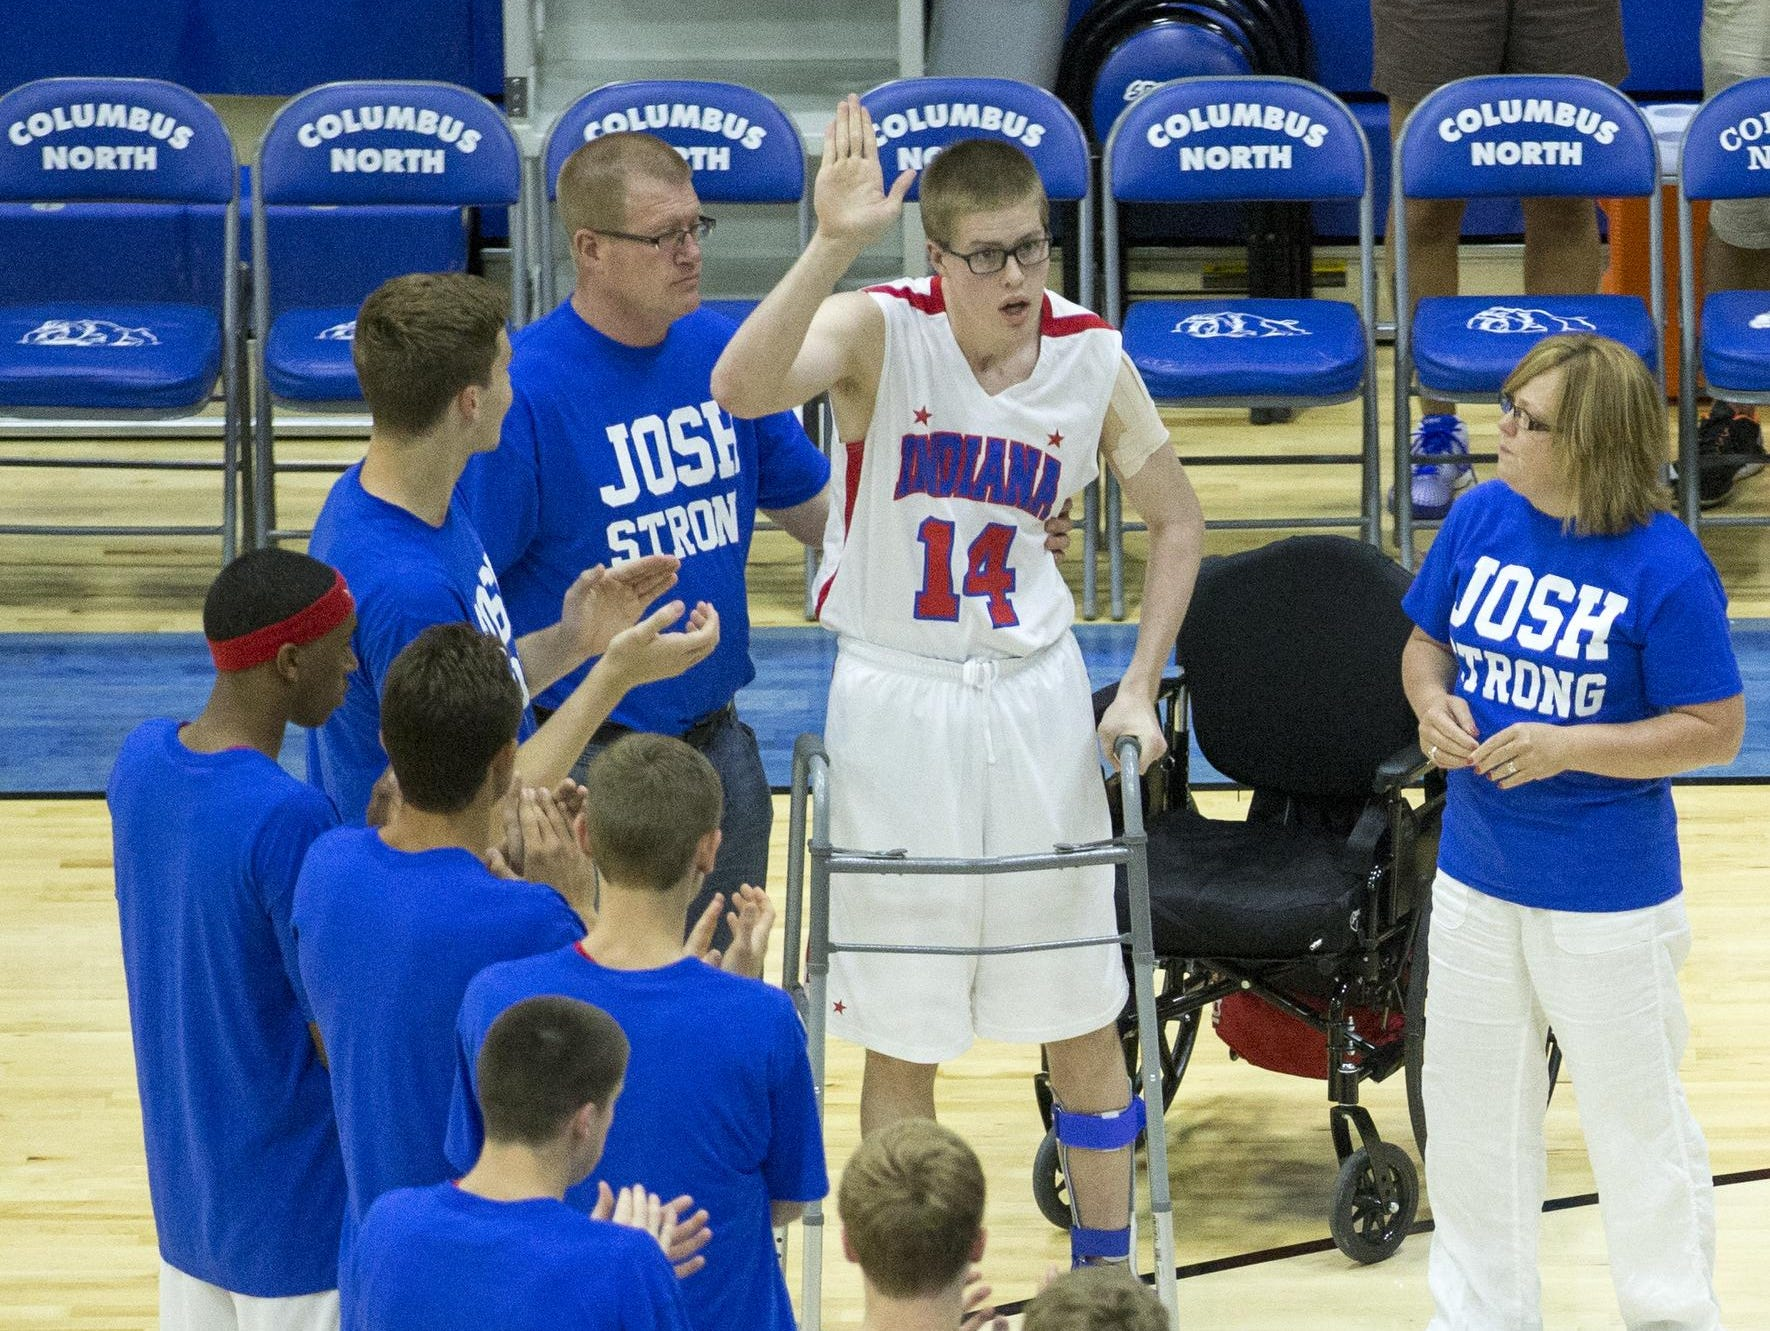 Recovering from serious injuries, Josh Speidel took a few steps in June as he was introduced before the Indiana Basketball All-Stars action against the Indiana juniors, at Columbus North High School, where Josh played.